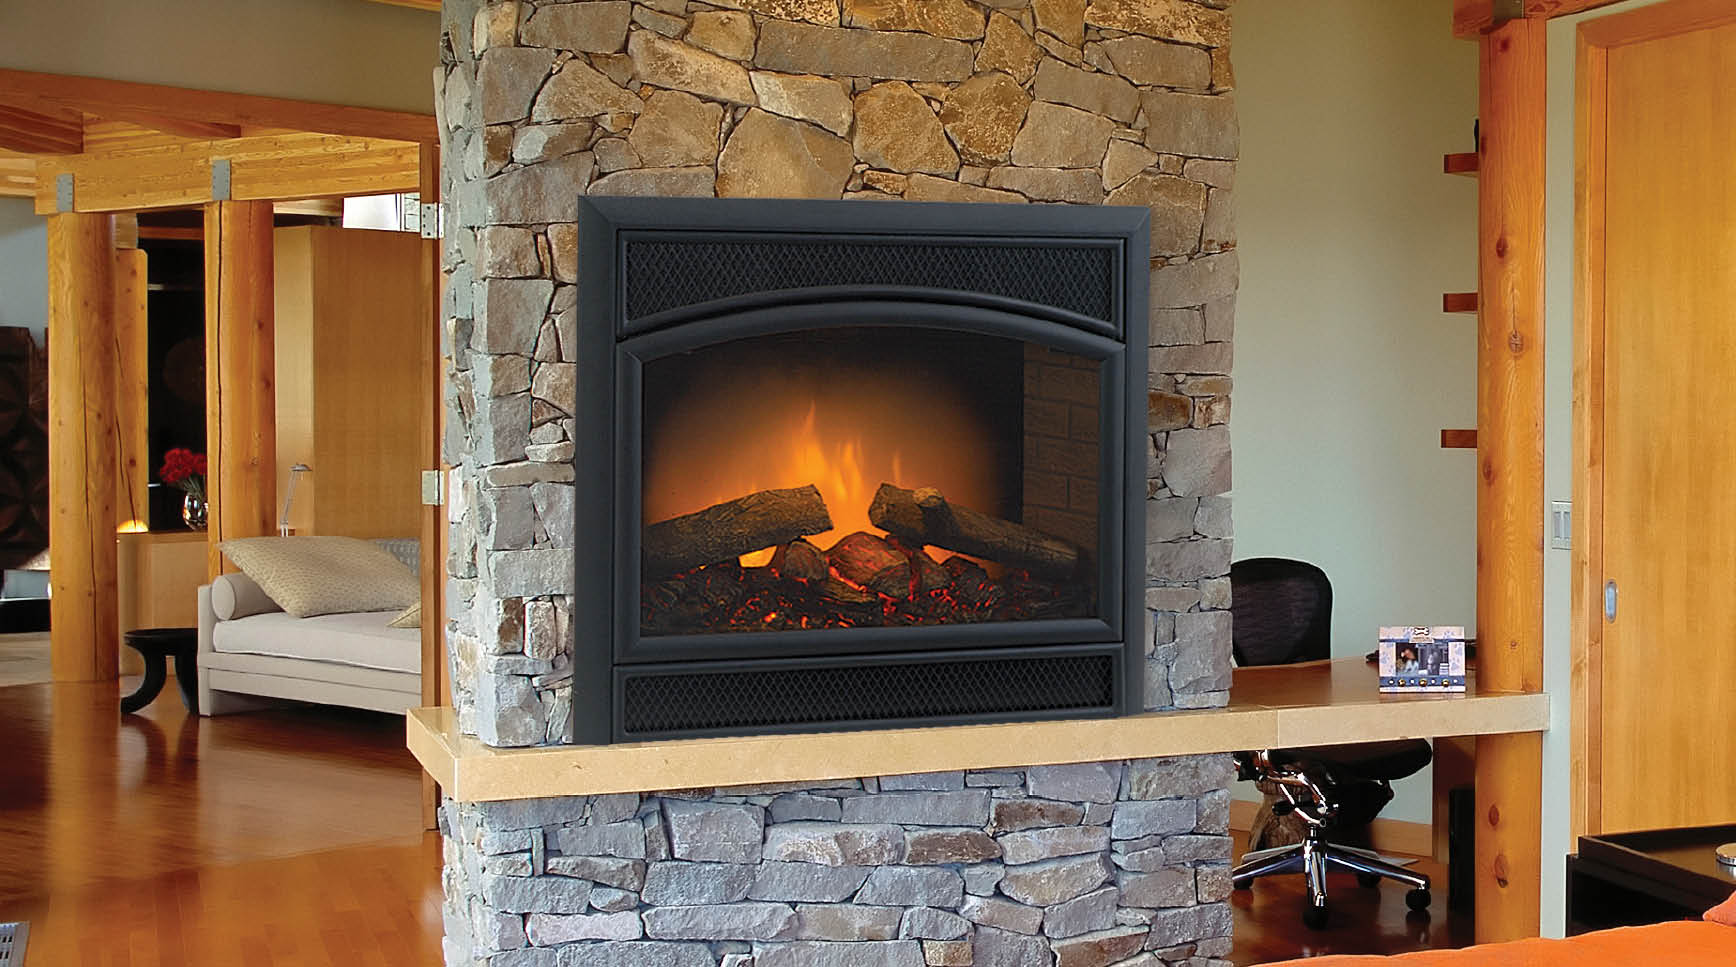 Two Sided Fireplace Warms Spacious Interior Effortless